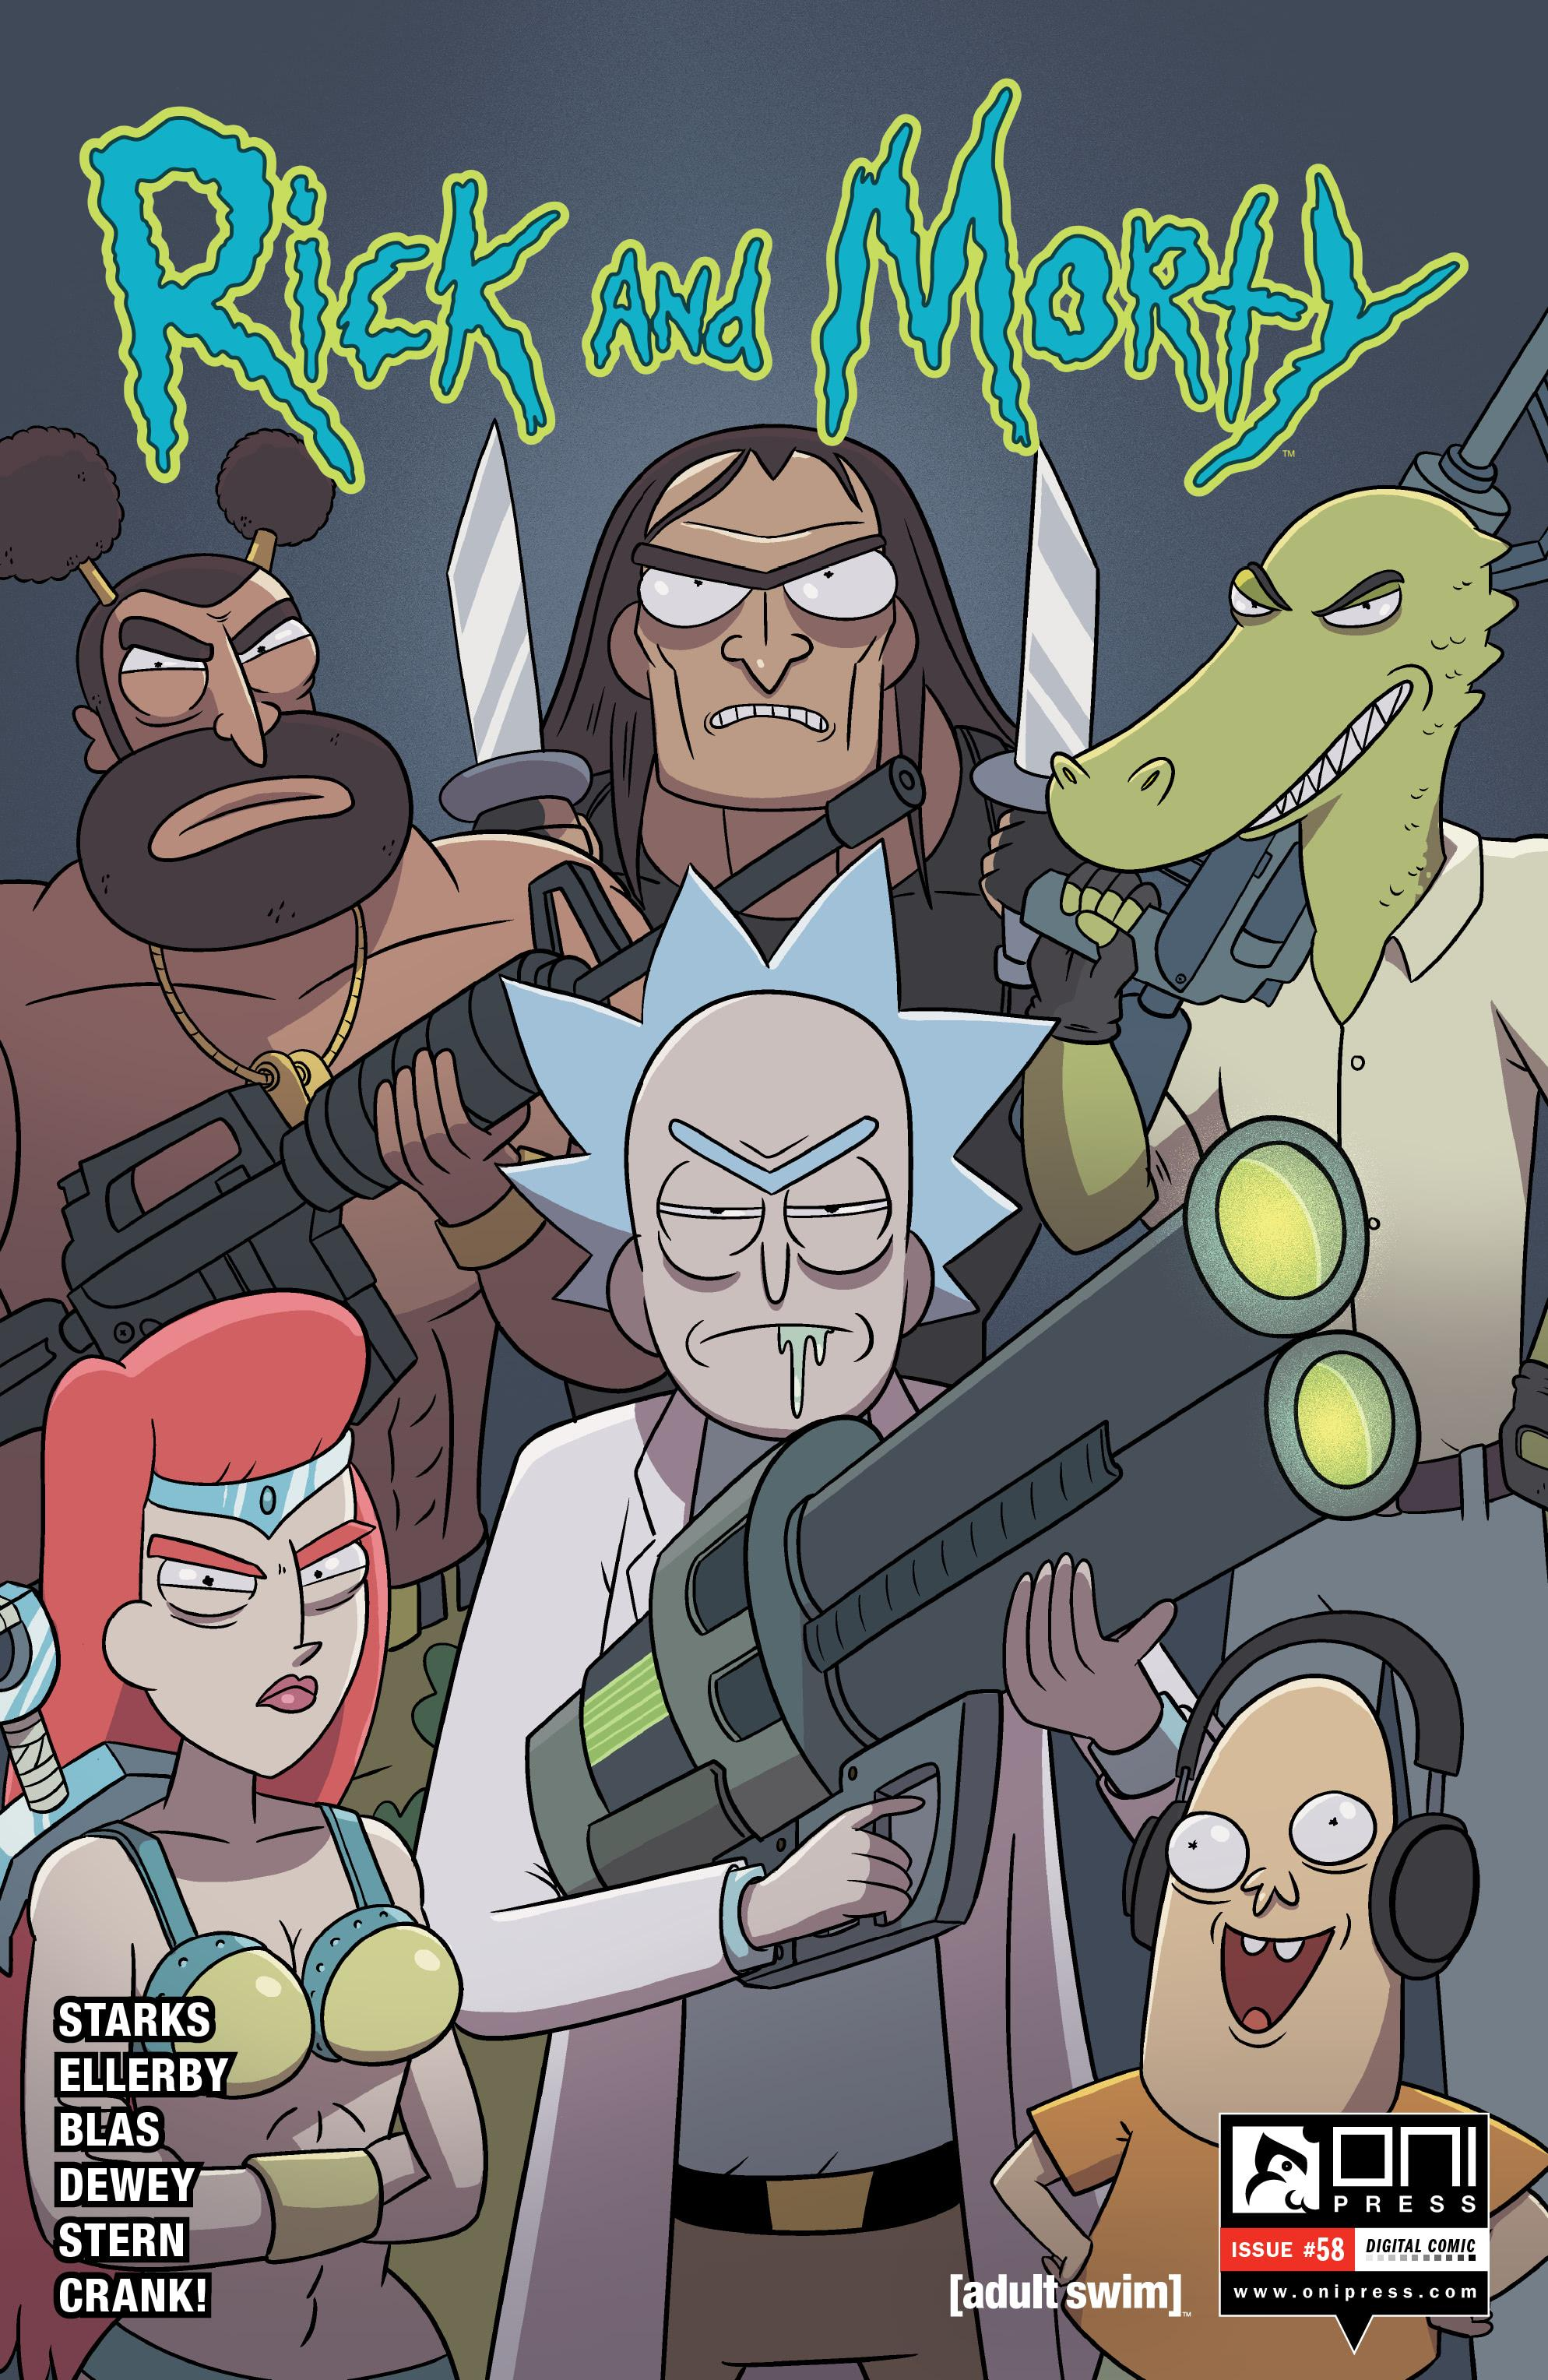 Missing Morty ;) - File 1 of 1 - yEnc Rick and Morty 058 (2020) (Digital) (DrDoom-Empire